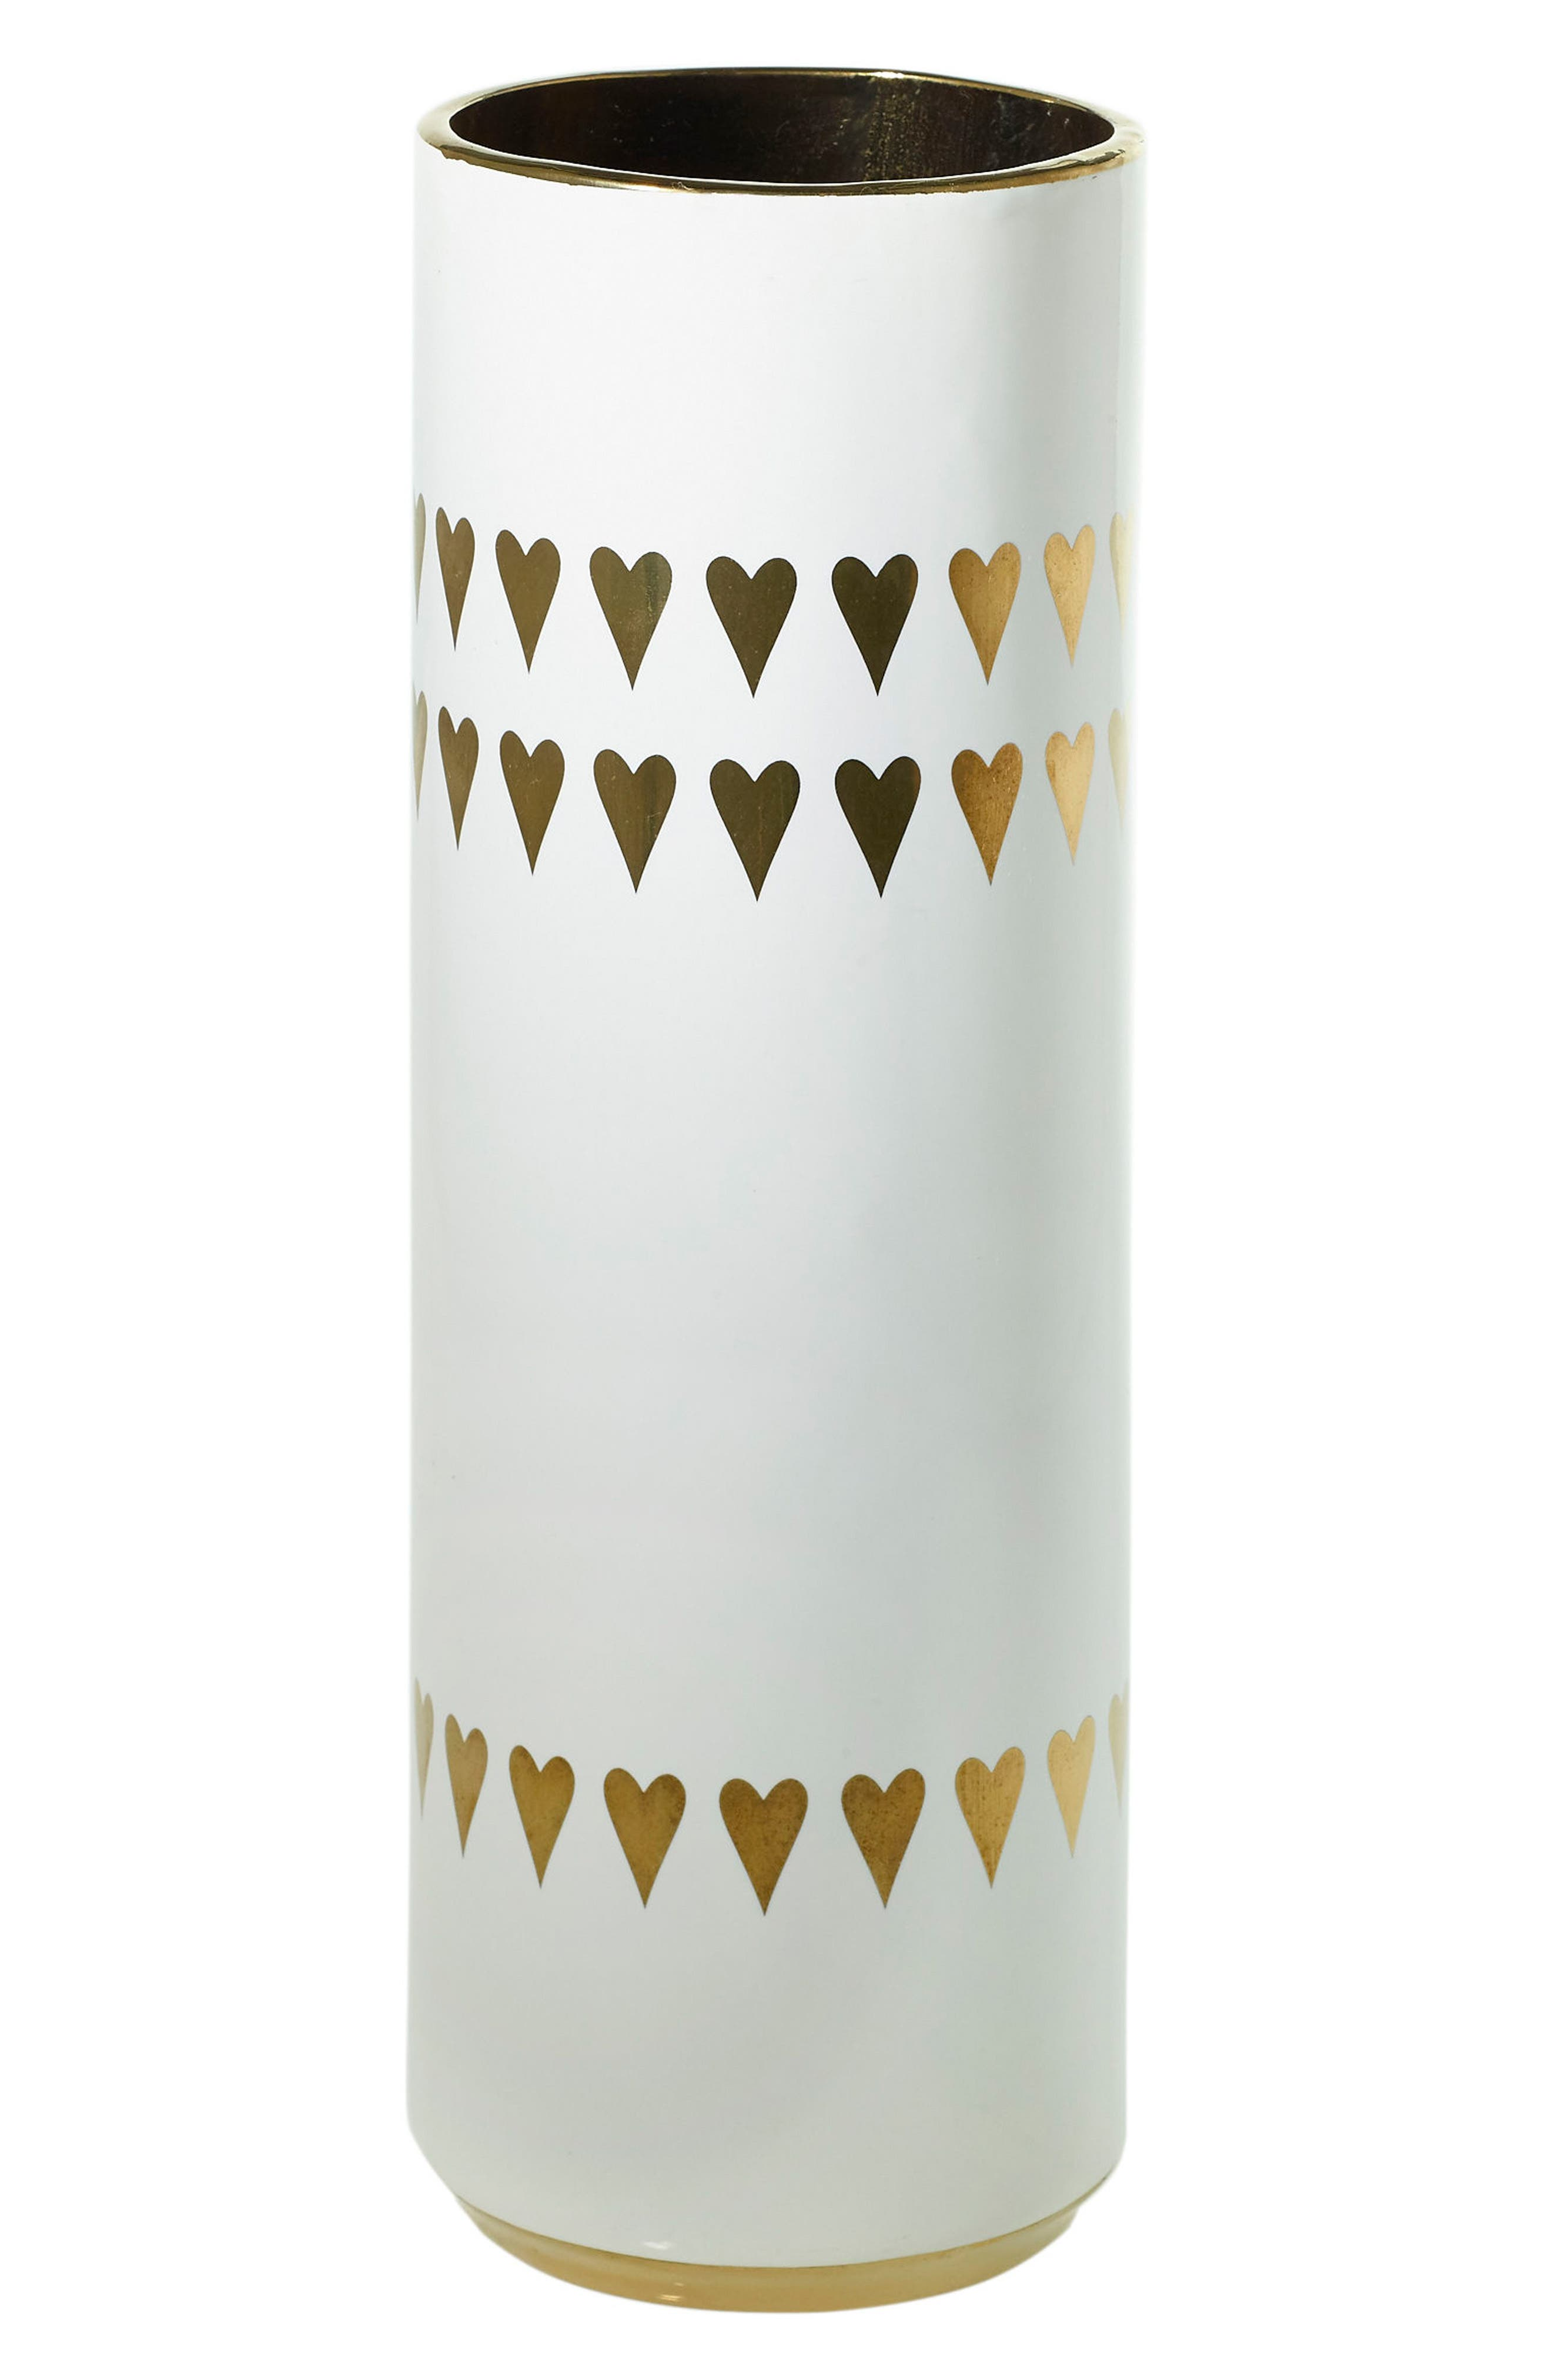 Alternate Image 1 Selected - Accent Decor Spade Ceramic Vase